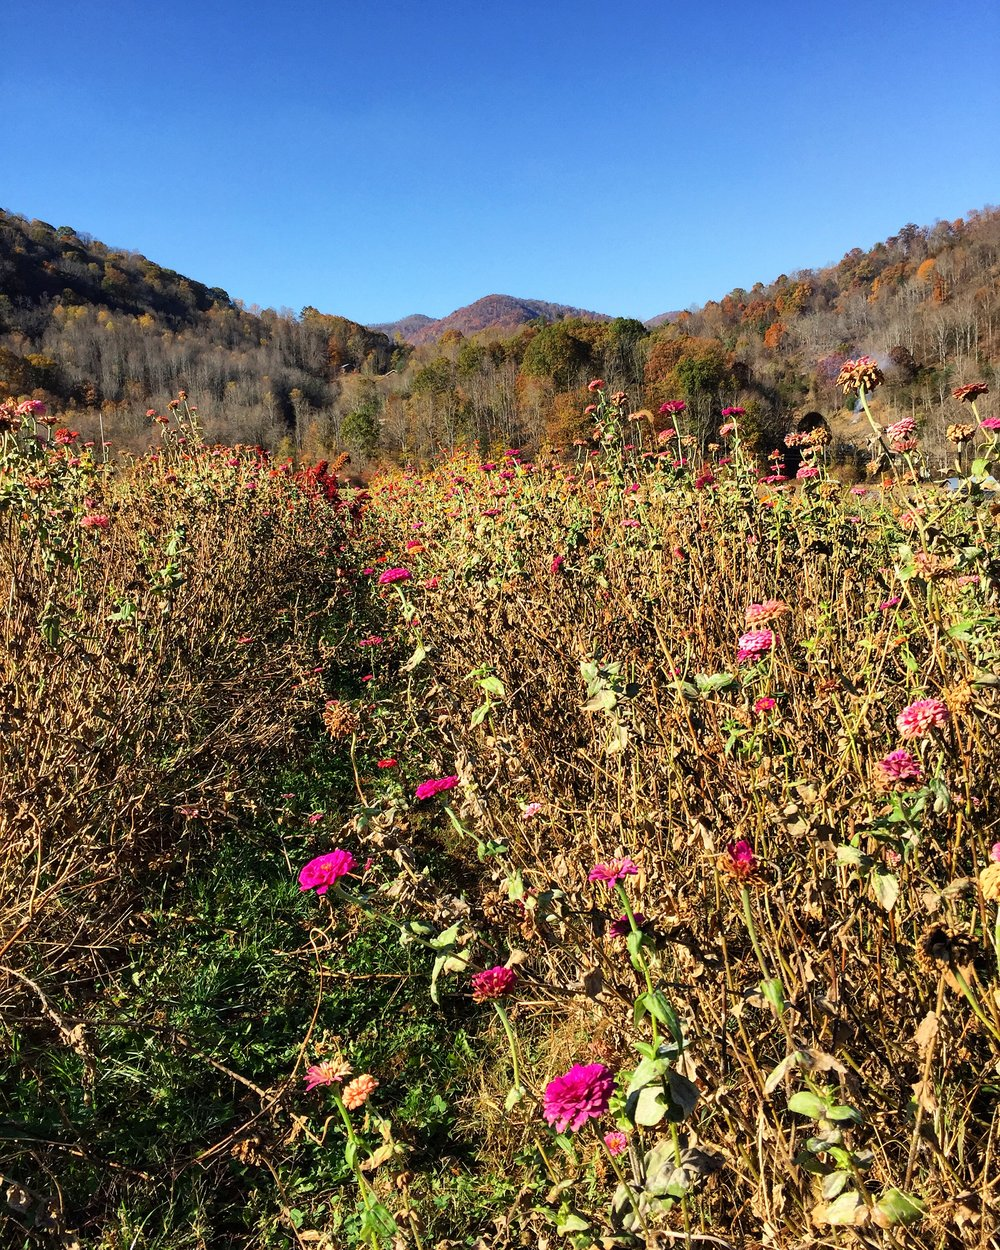 The view at Lady Luck Flower Farm// Sandy Mush, North Carolina